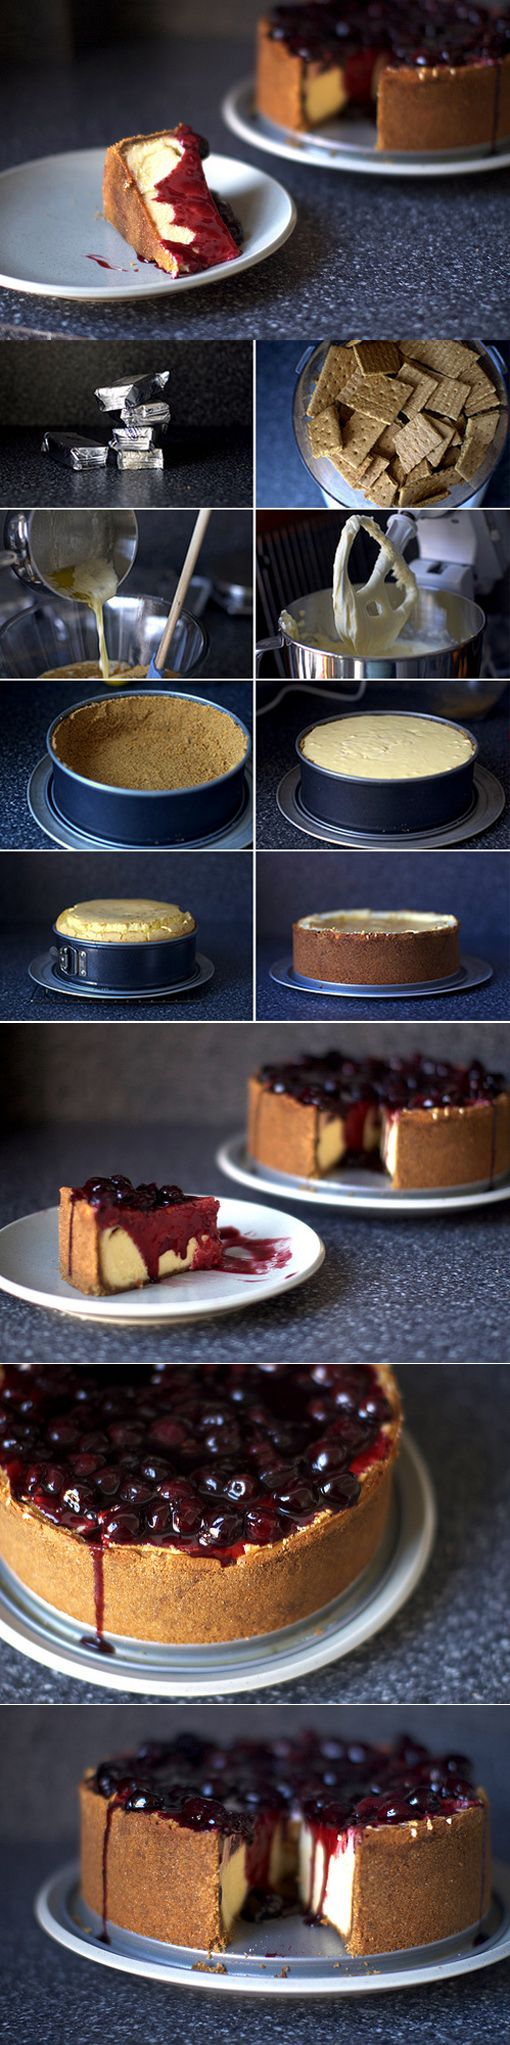 New York Cheese Cake / http://smittenkitchen.com/